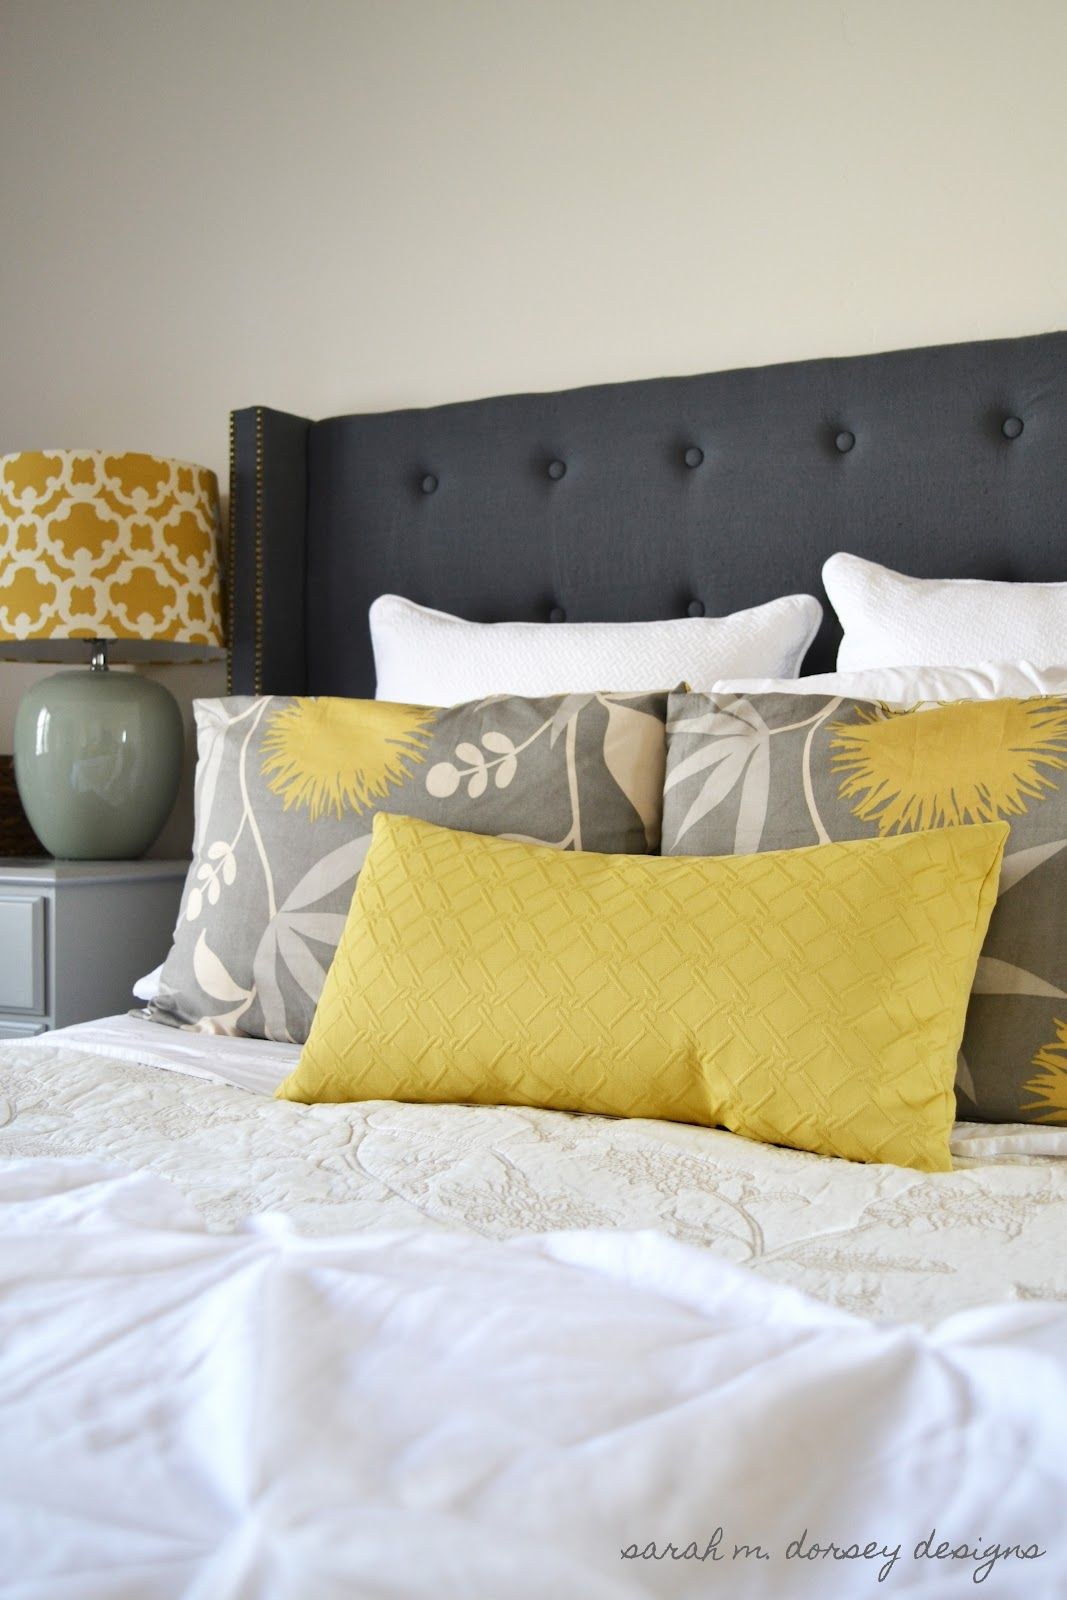 Lieblich Lilikoi Joy: 15 Favorite DIY Upholstered Headboards {with Tutorials!